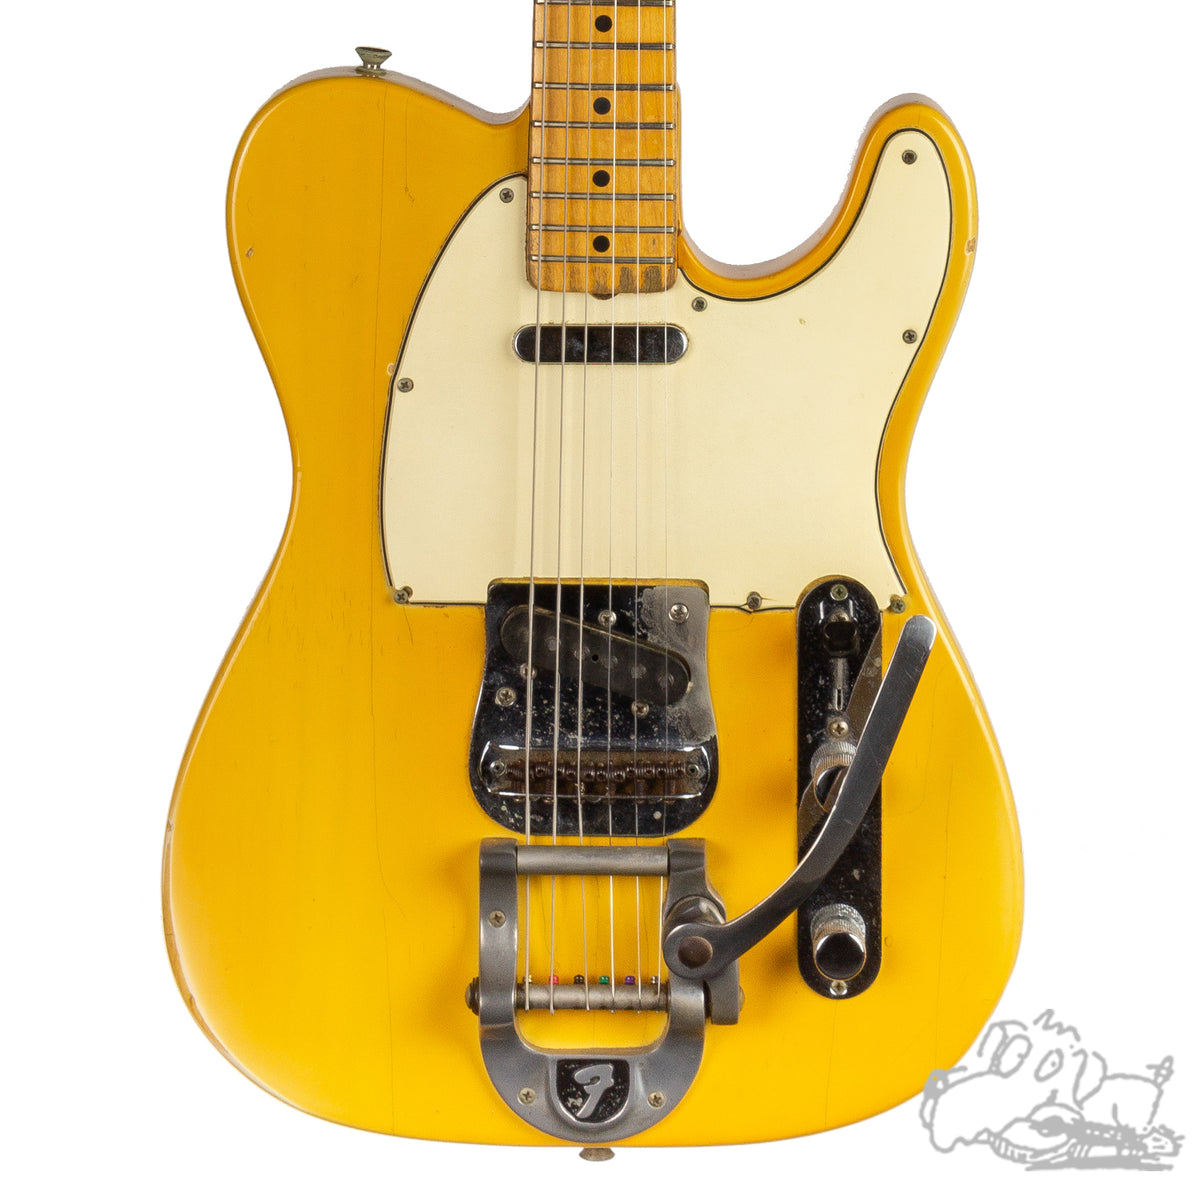 1968 Fender Telecaster in Blonde with Factory-Installed Bigsby